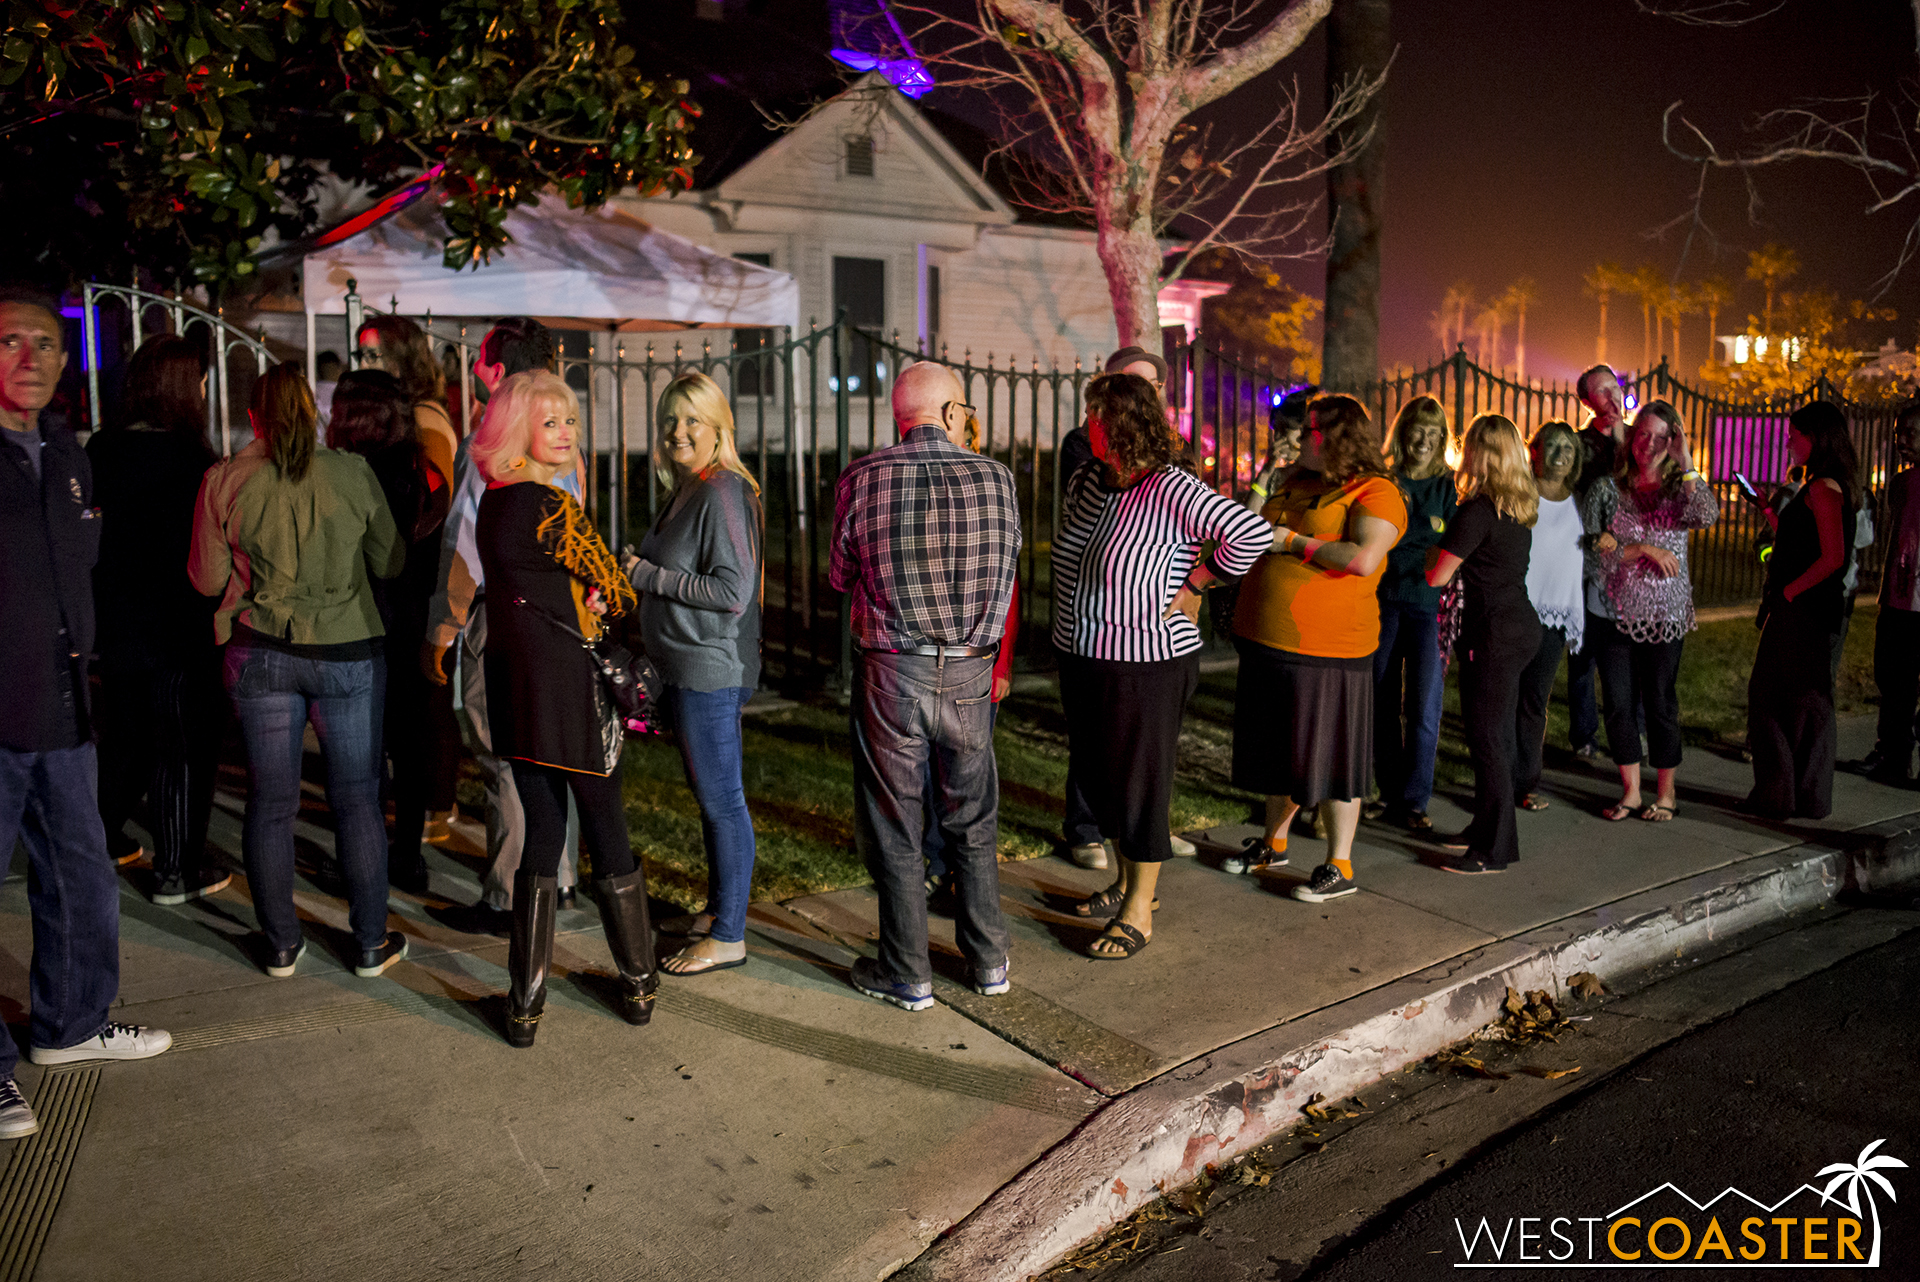 The four-night event proved to be pretty popular, with regular waits.